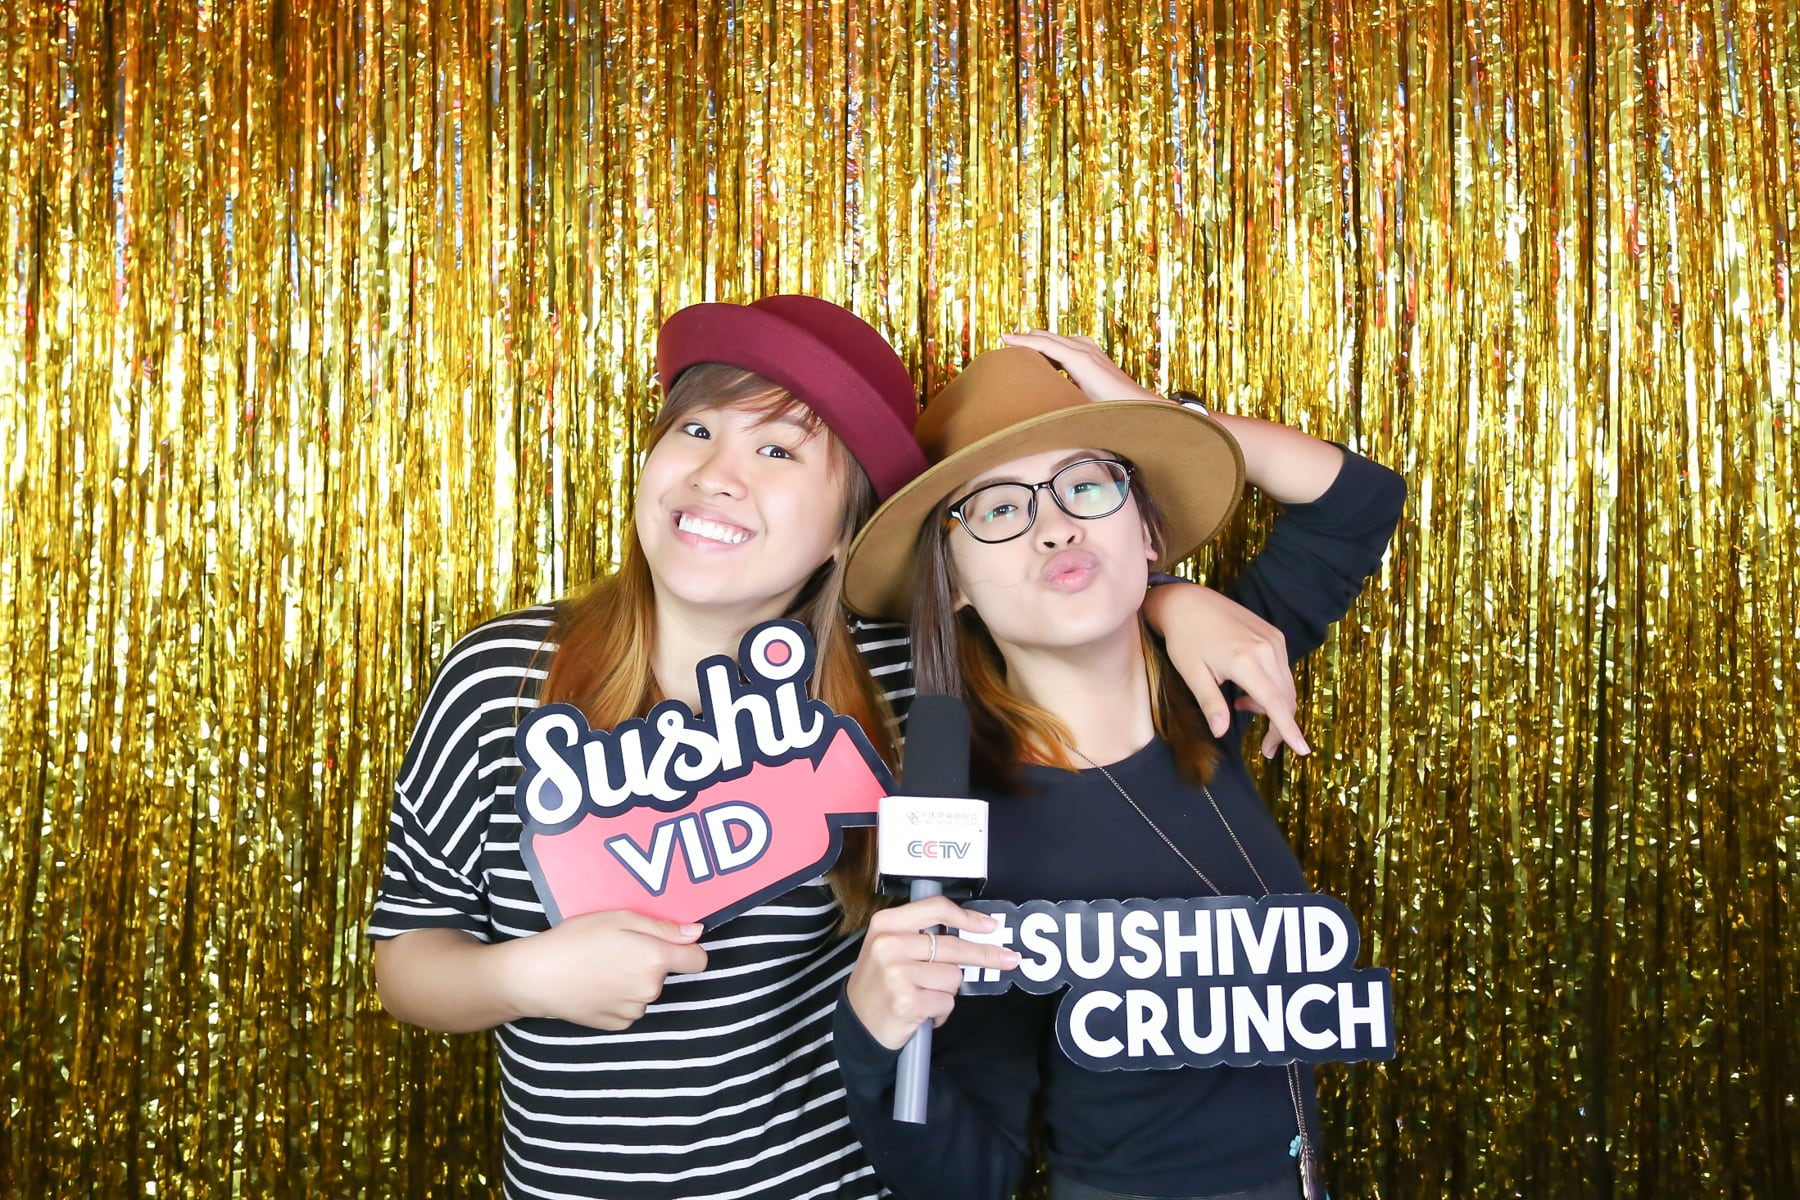 Sushivid+crunch+tagbooth+38